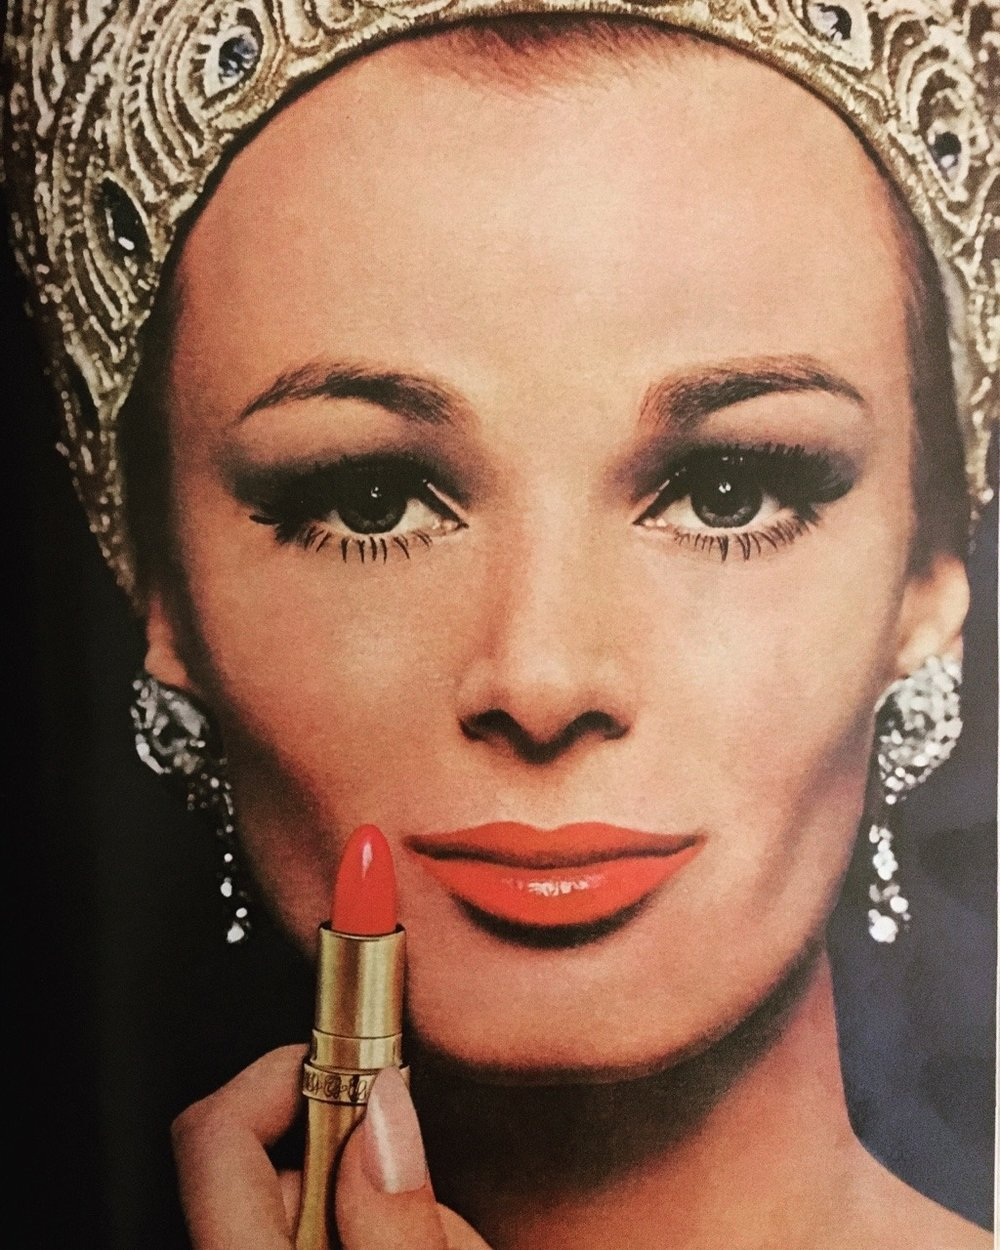 Cover Girl lipstick. Mademoiselle. June 1964.